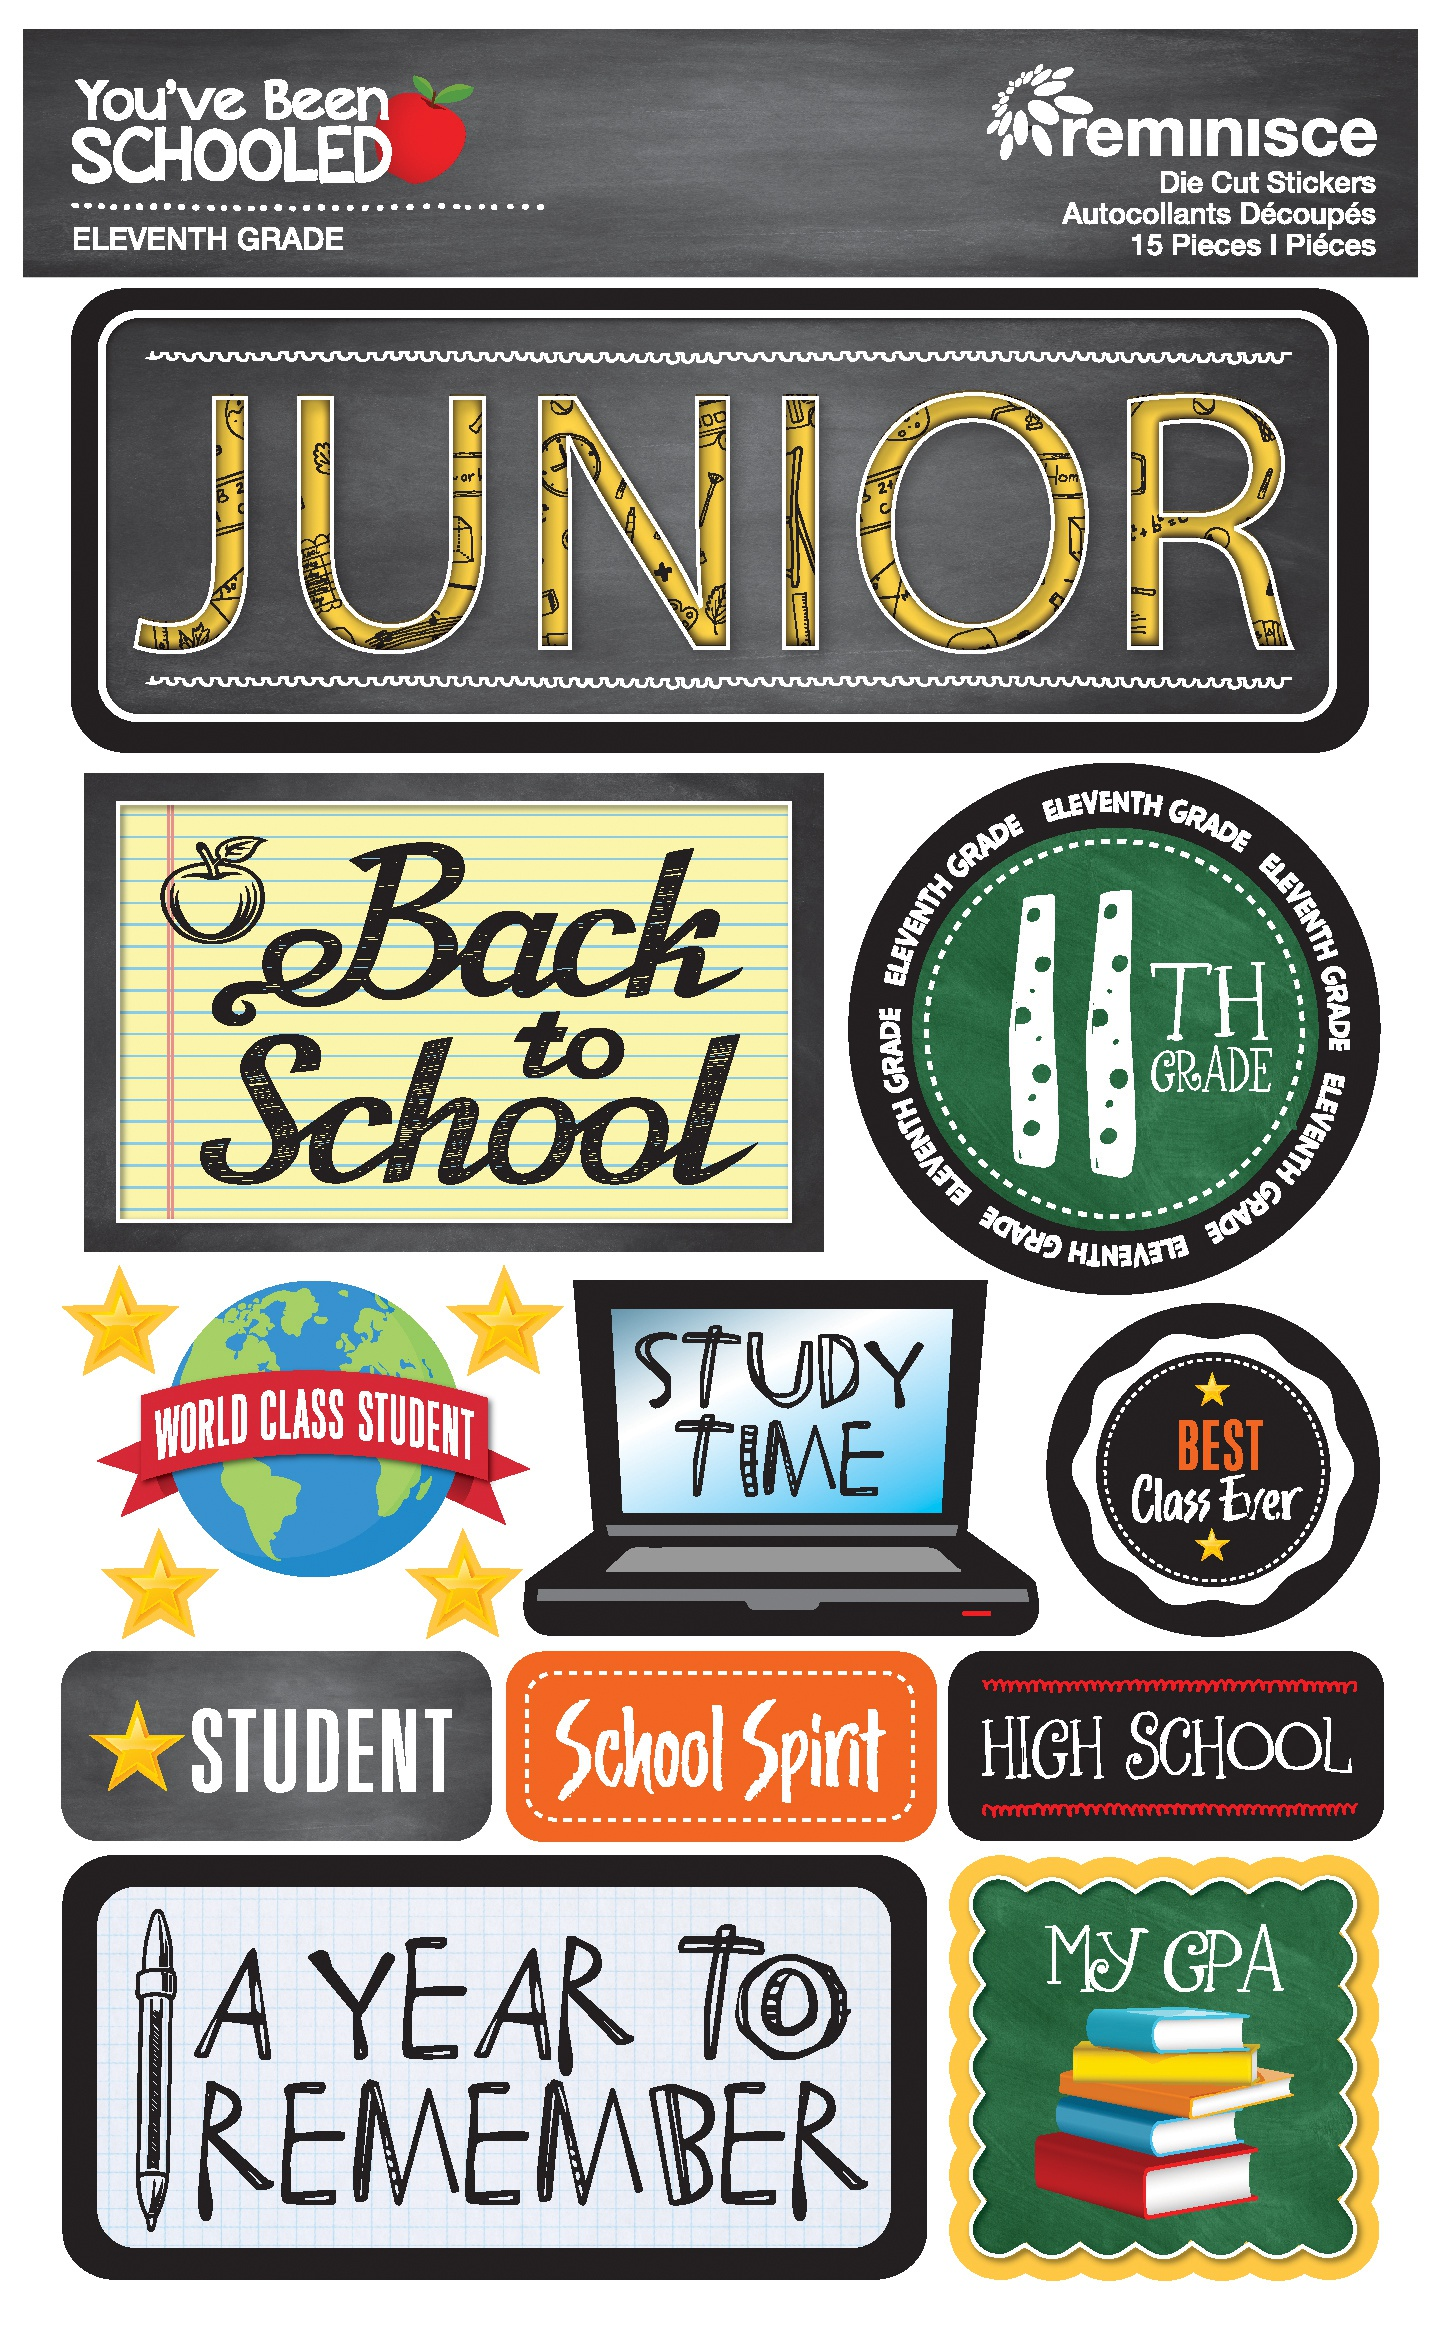 Reminisce You've Been Schooled - 11th Grade / Junior 3D Dimensional Stickers